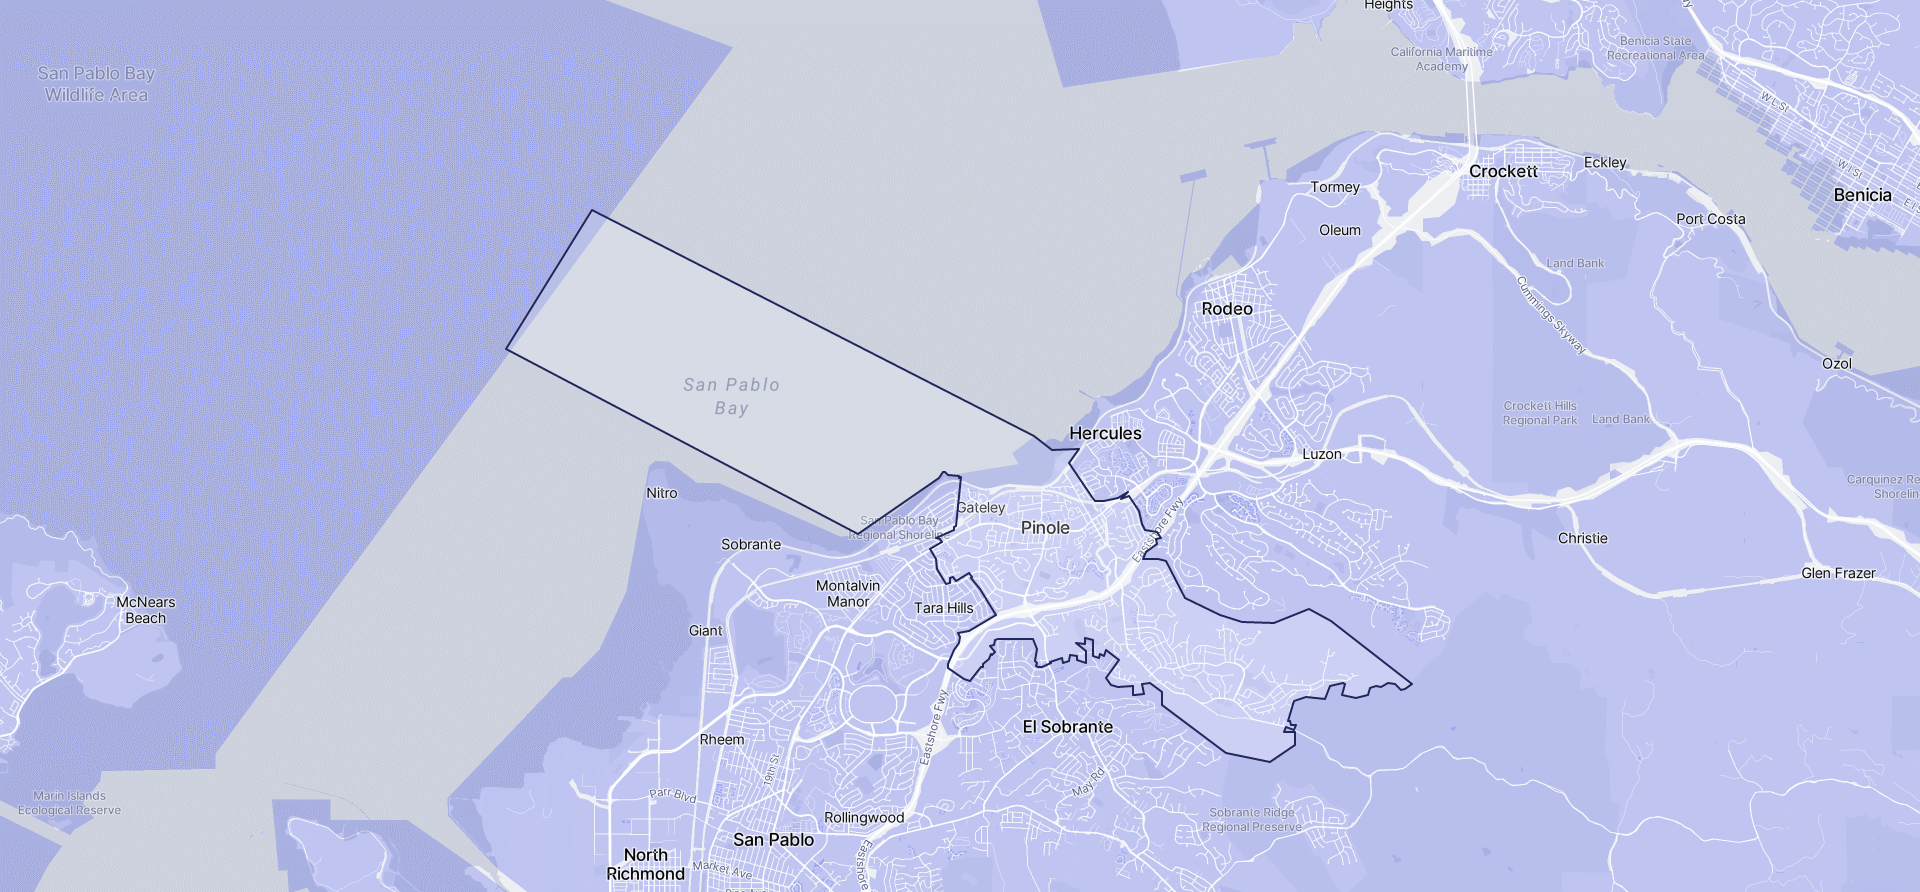 Image of Pinole boundaries on a map.